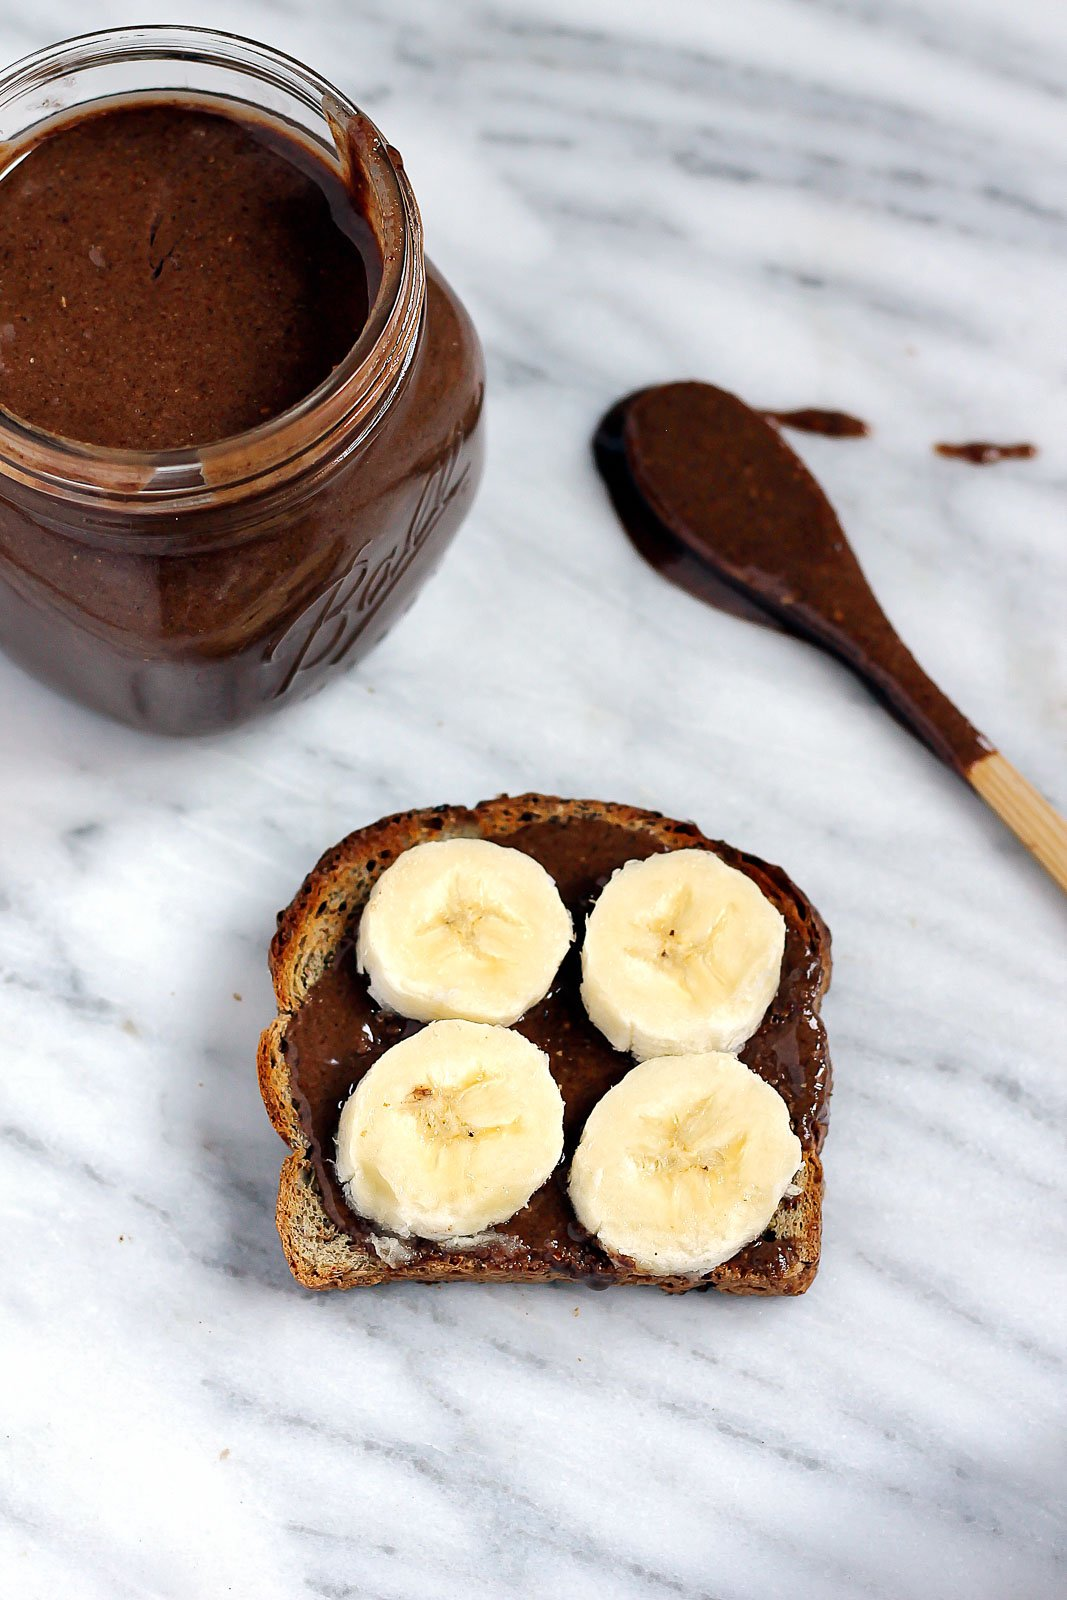 dark chocolate pecan butter in a jar and on toast with banana slices